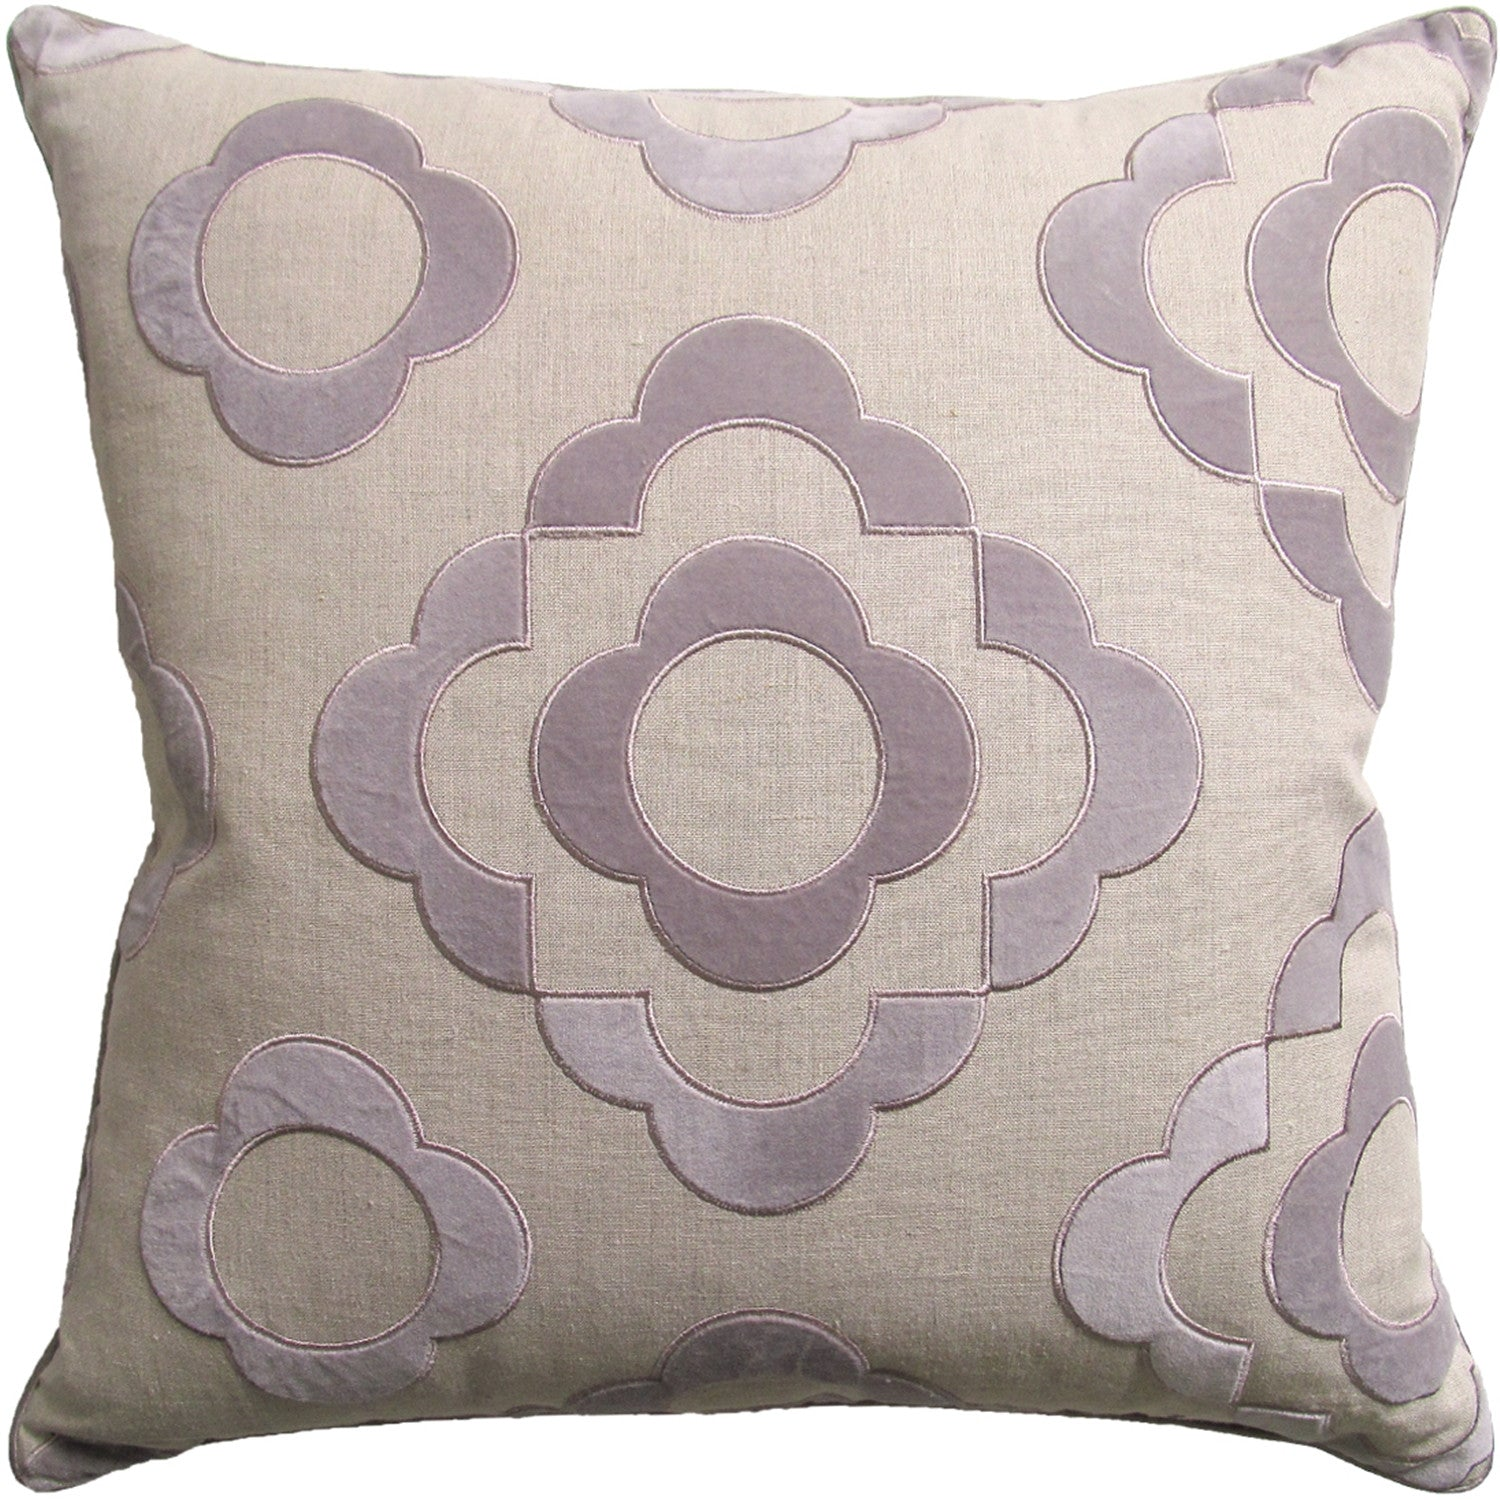 Ryan Studio Tremoille Pillow in Lavender